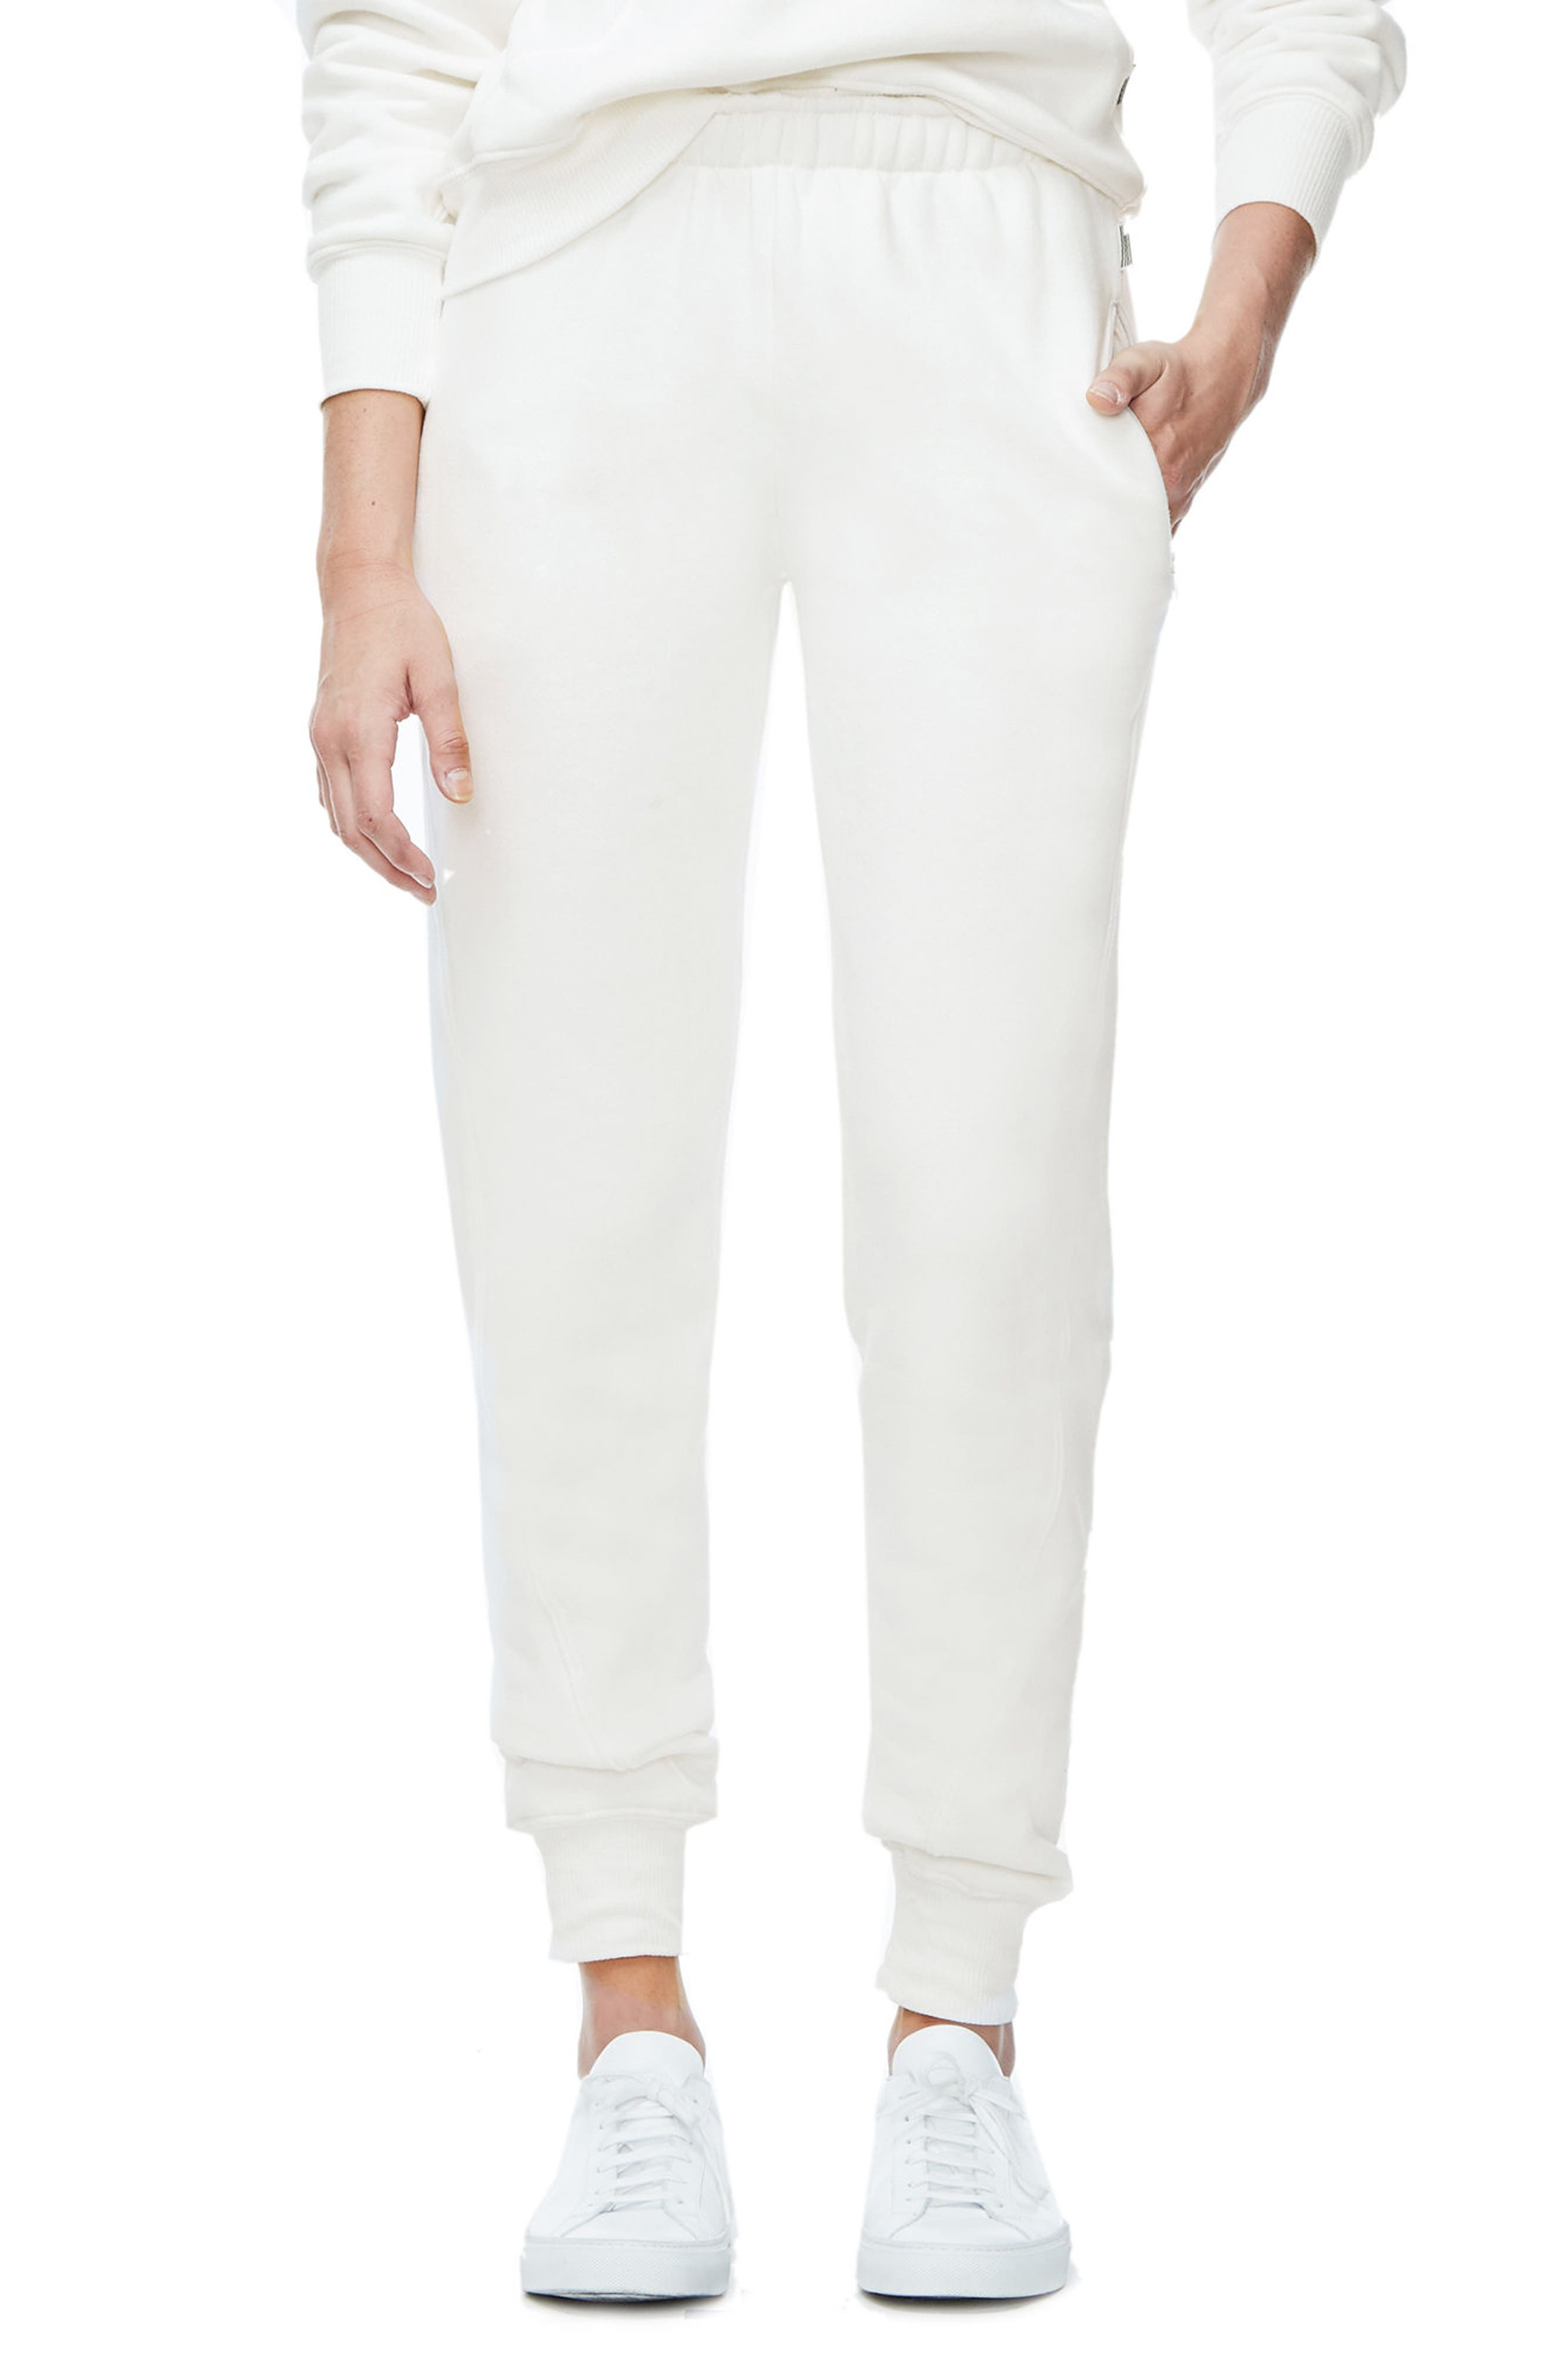 Good Sweats The Twisted Seam Pants,                             Alternate thumbnail 5, color,